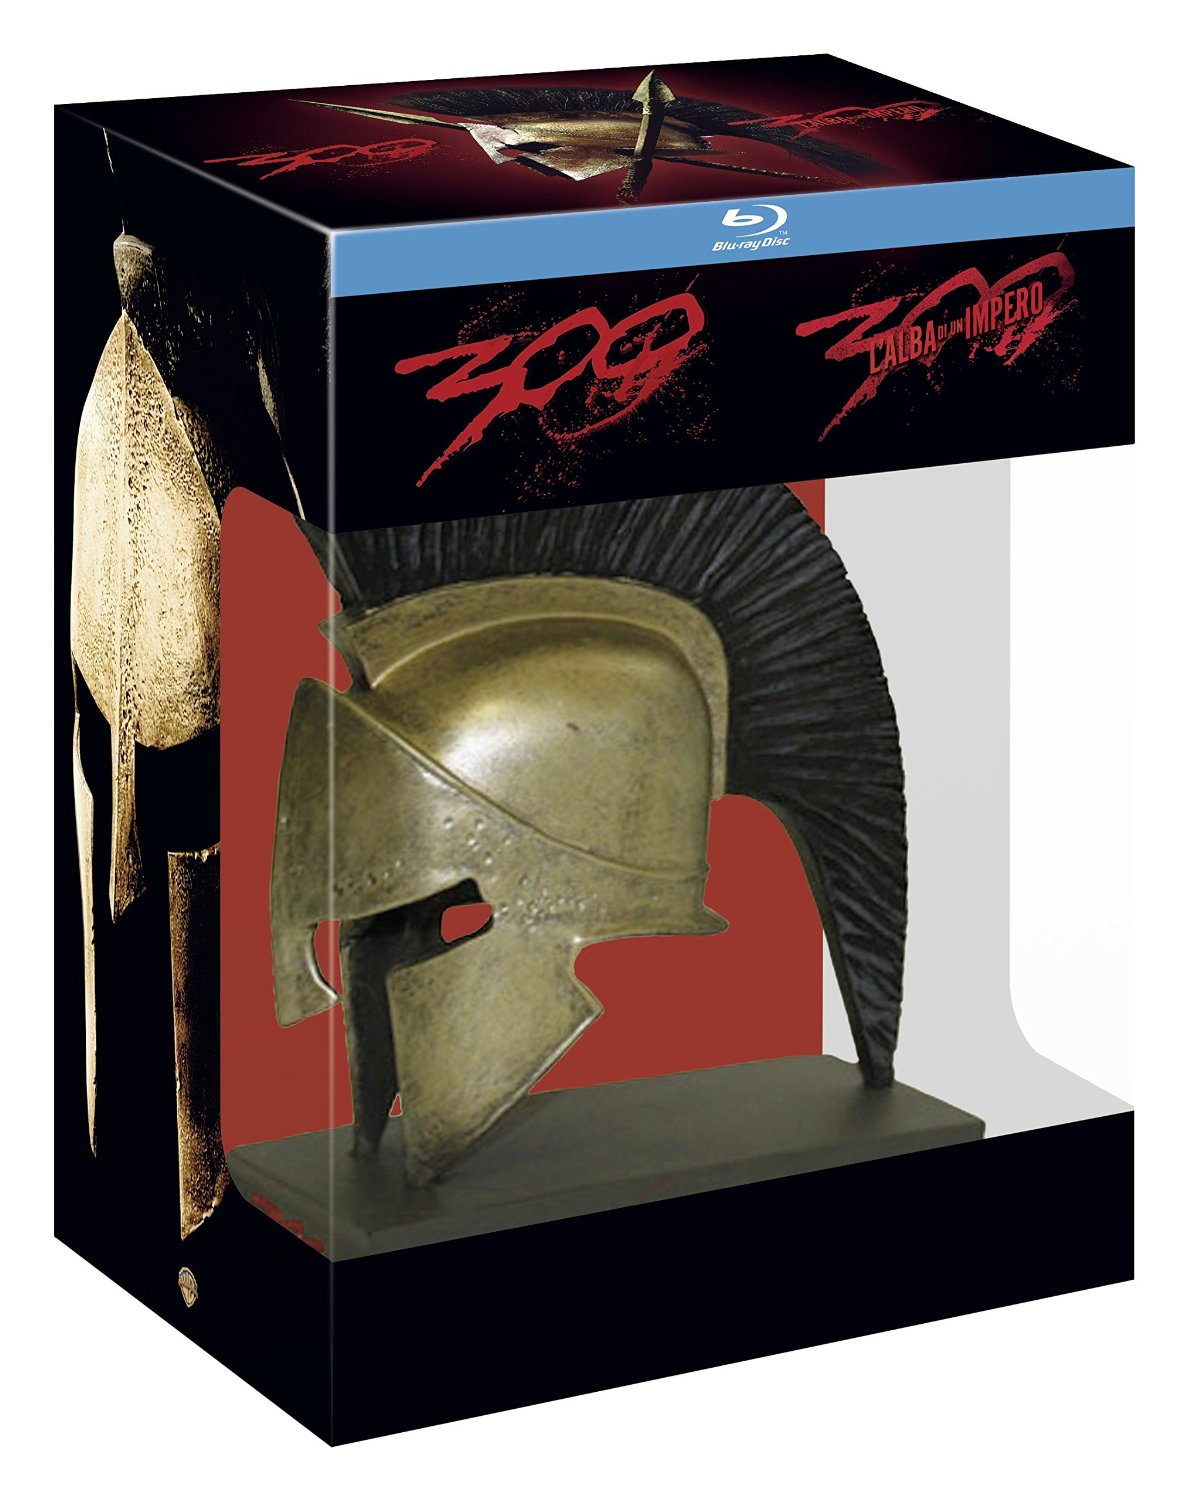 300 the complete collection 2